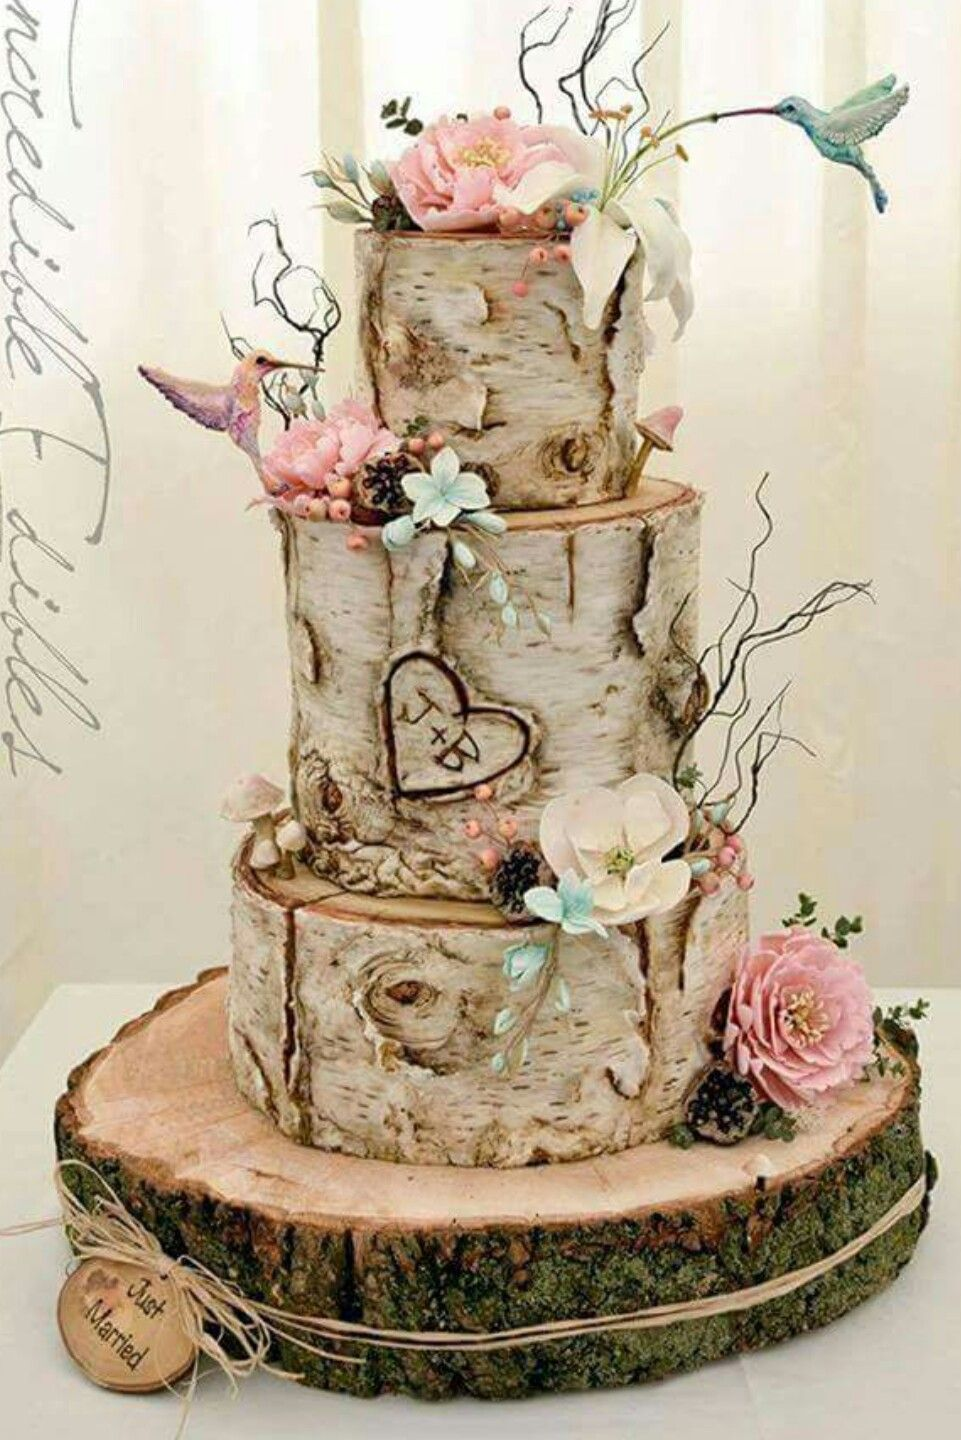 Pin by Bonnie Wang on Weddings Themed wedding cakes